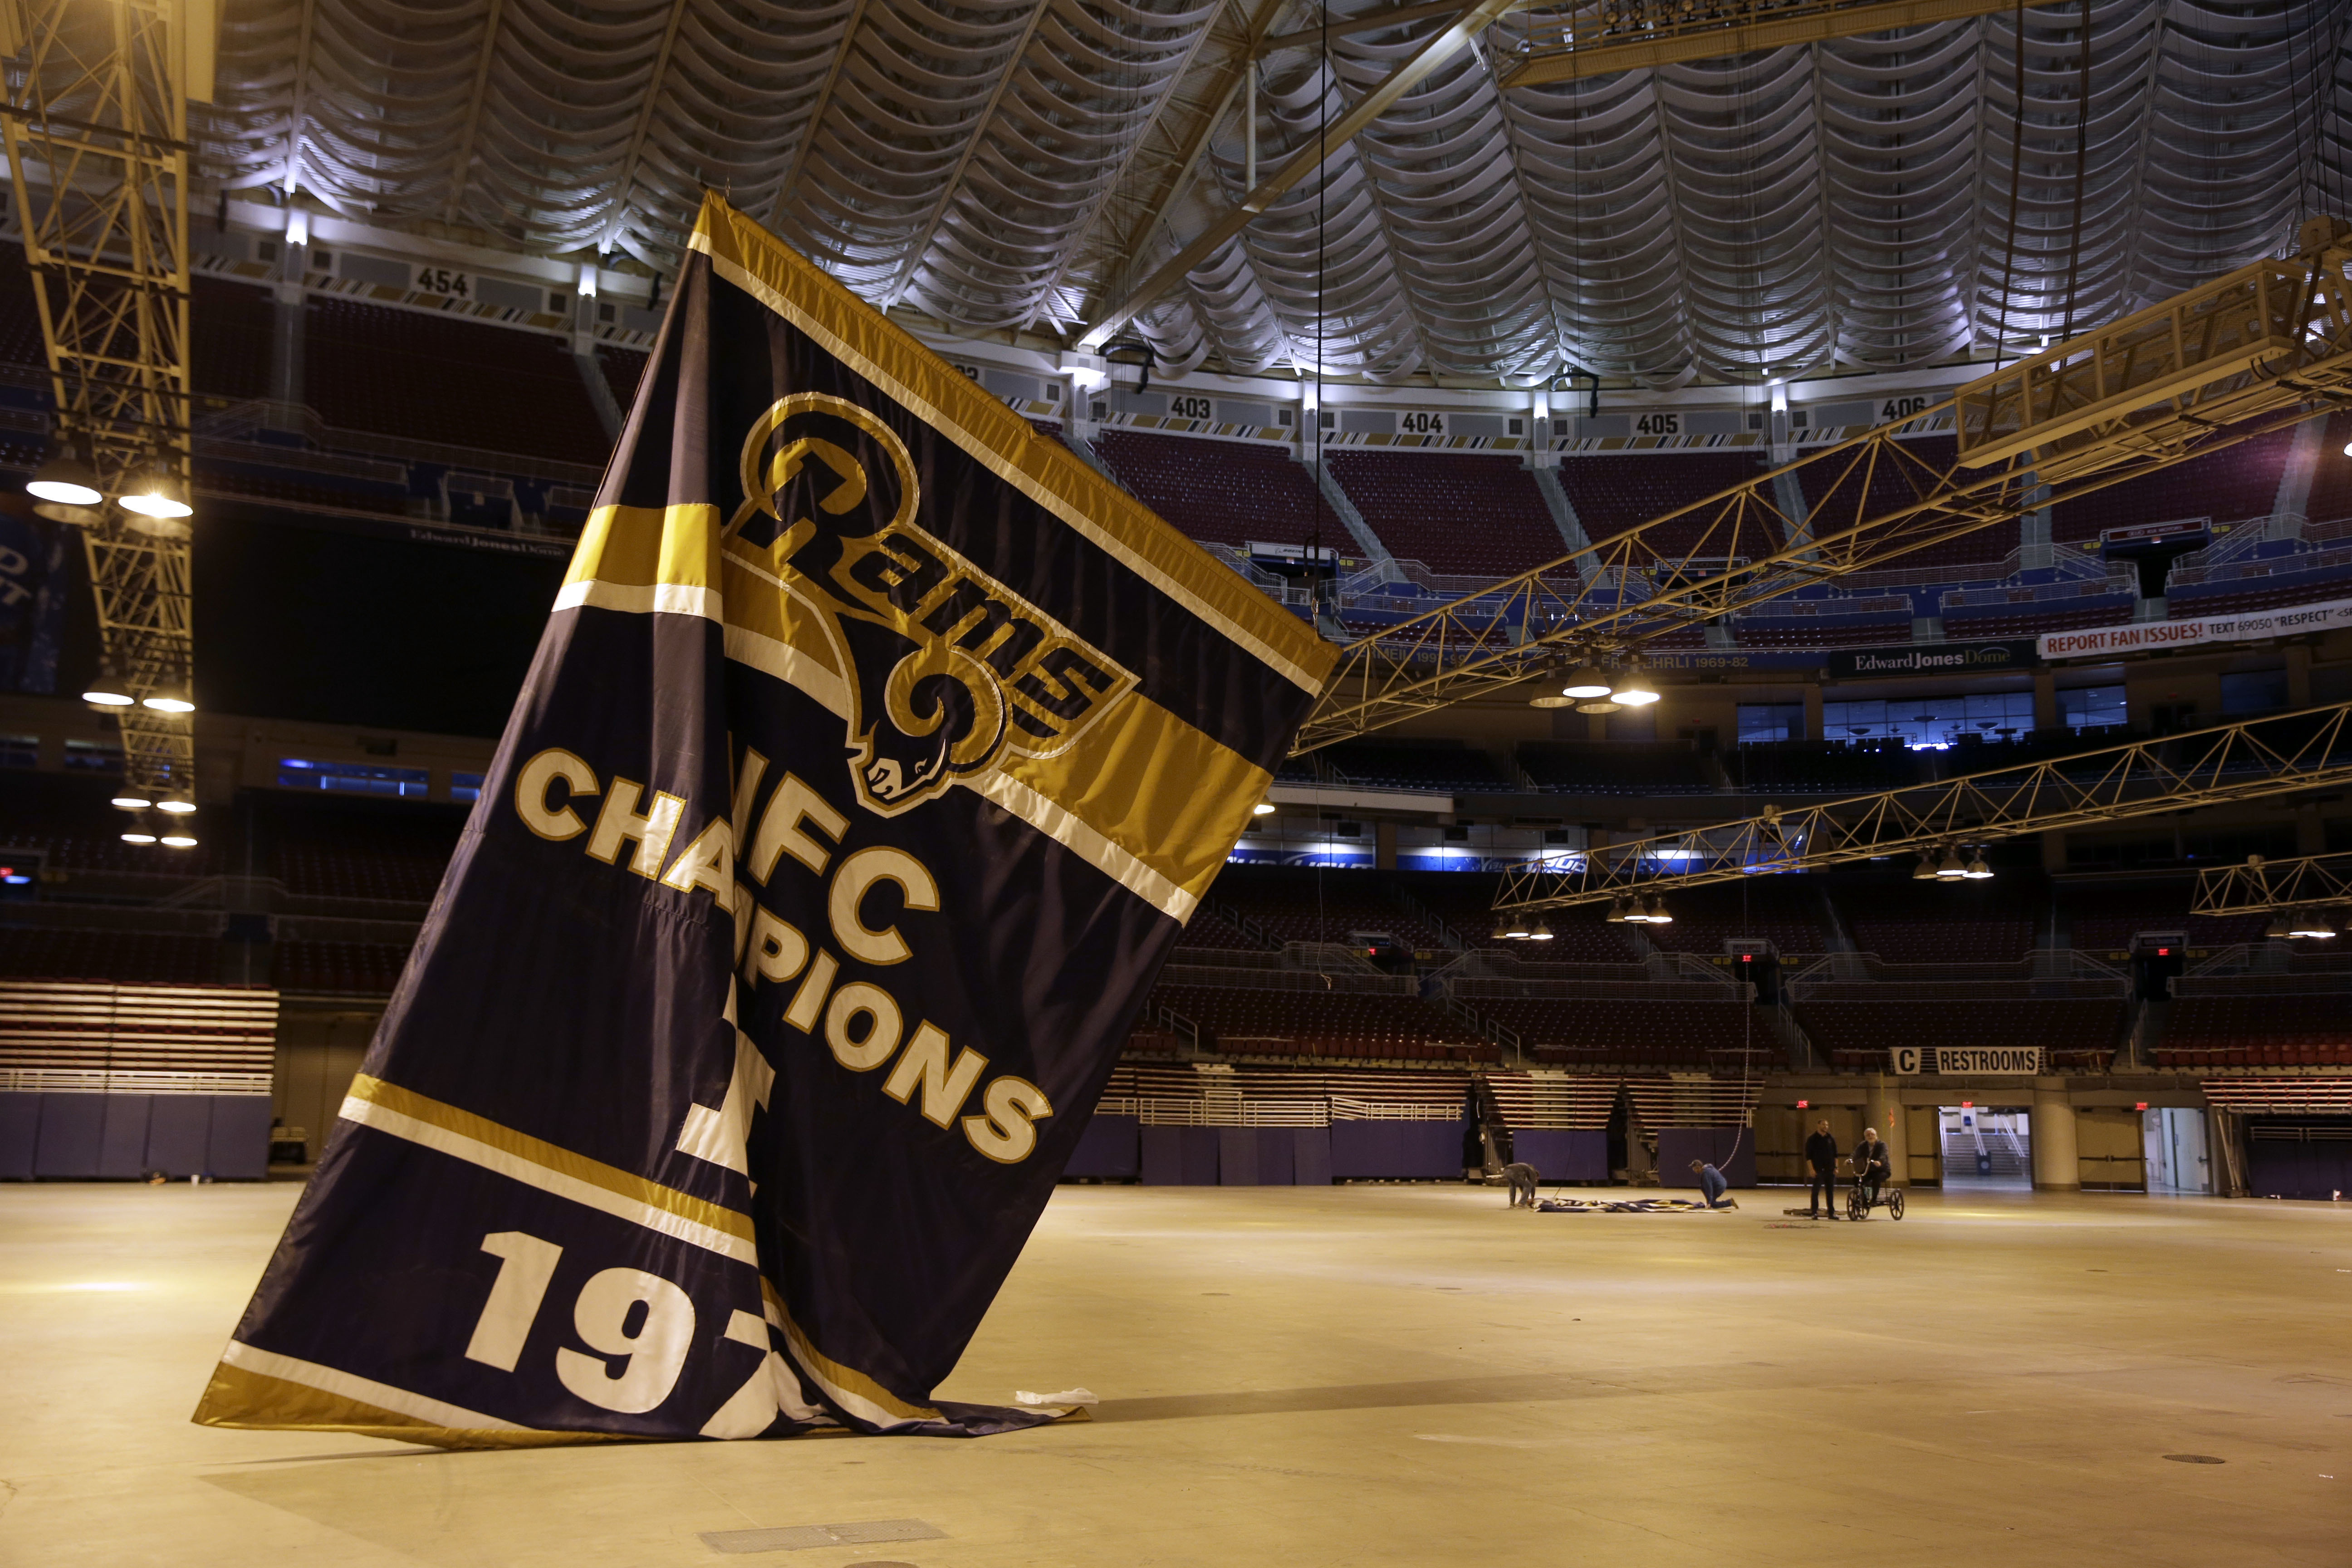 FILE - In this Jan. 14, 2016 file photo, championship banners are removed from the Edward Jones Dome, former home of the St. Louis Rams football team in St. Louis. The start of a new NFL season is bringing no buzz of excitement in St. Louis, left without